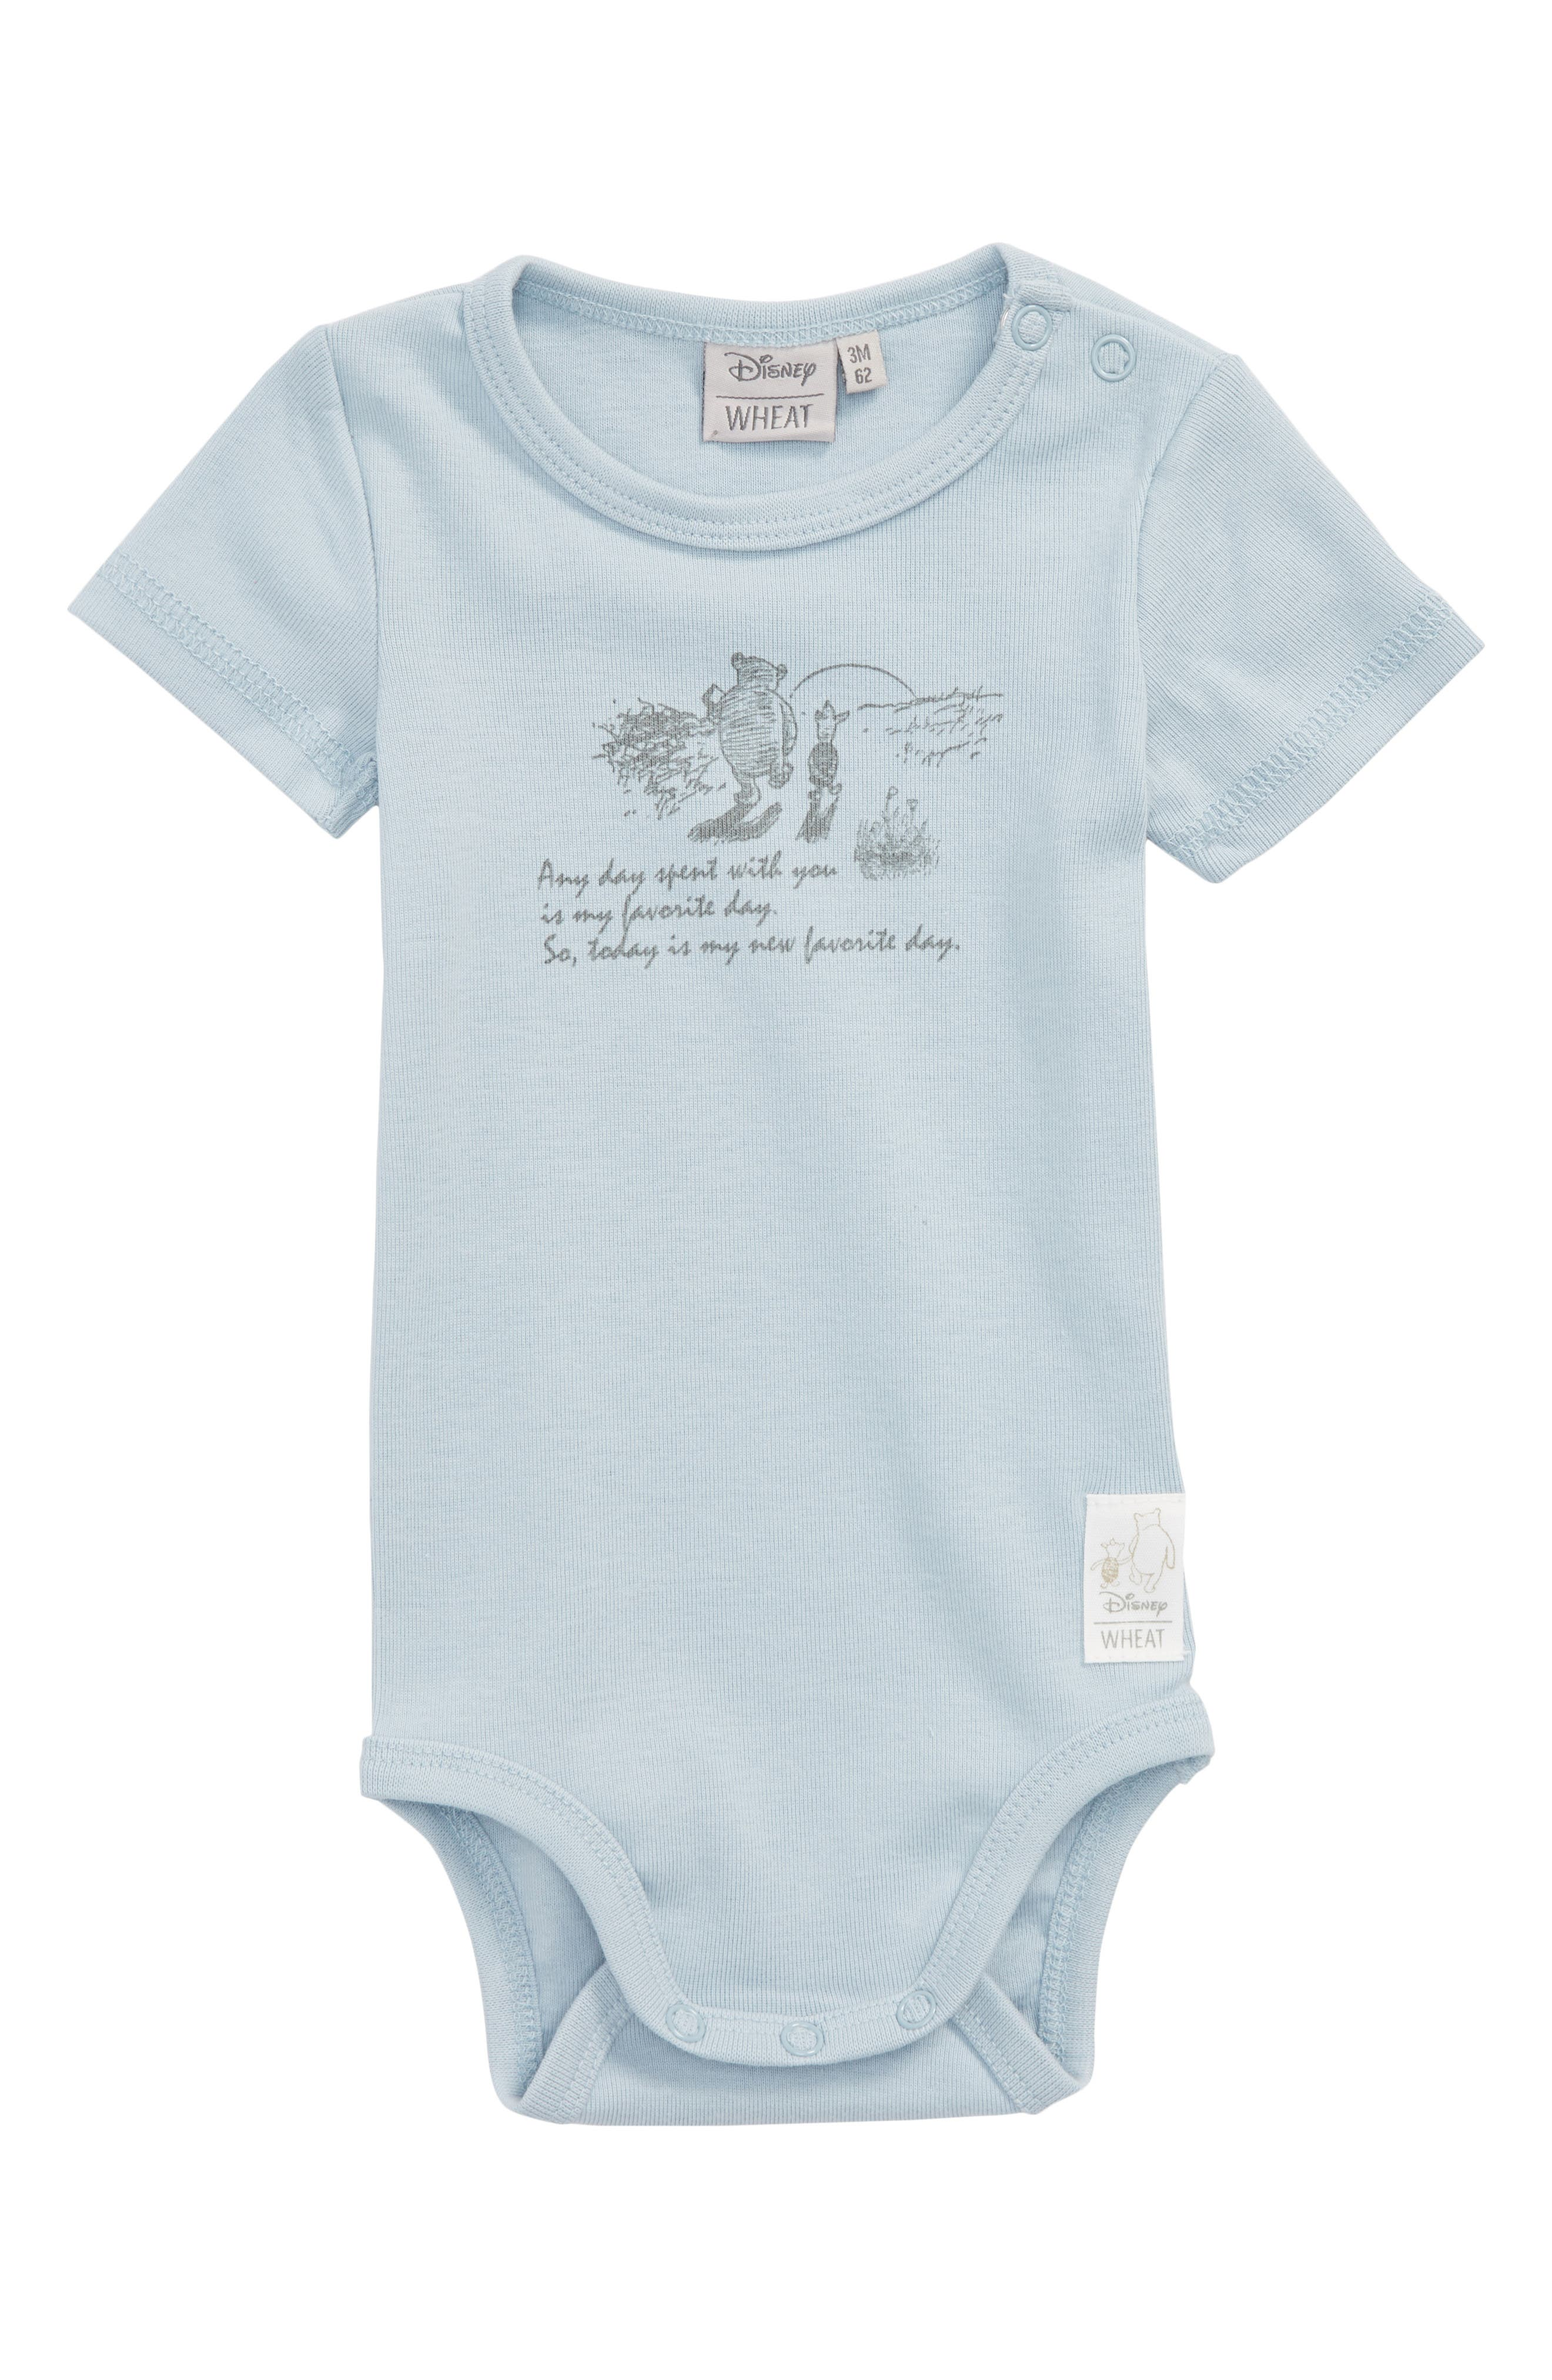 Wheat x Disney® Winnie the Pooh - Favorite Day Organic Cotton Bodysuit (Baby & Toddler)